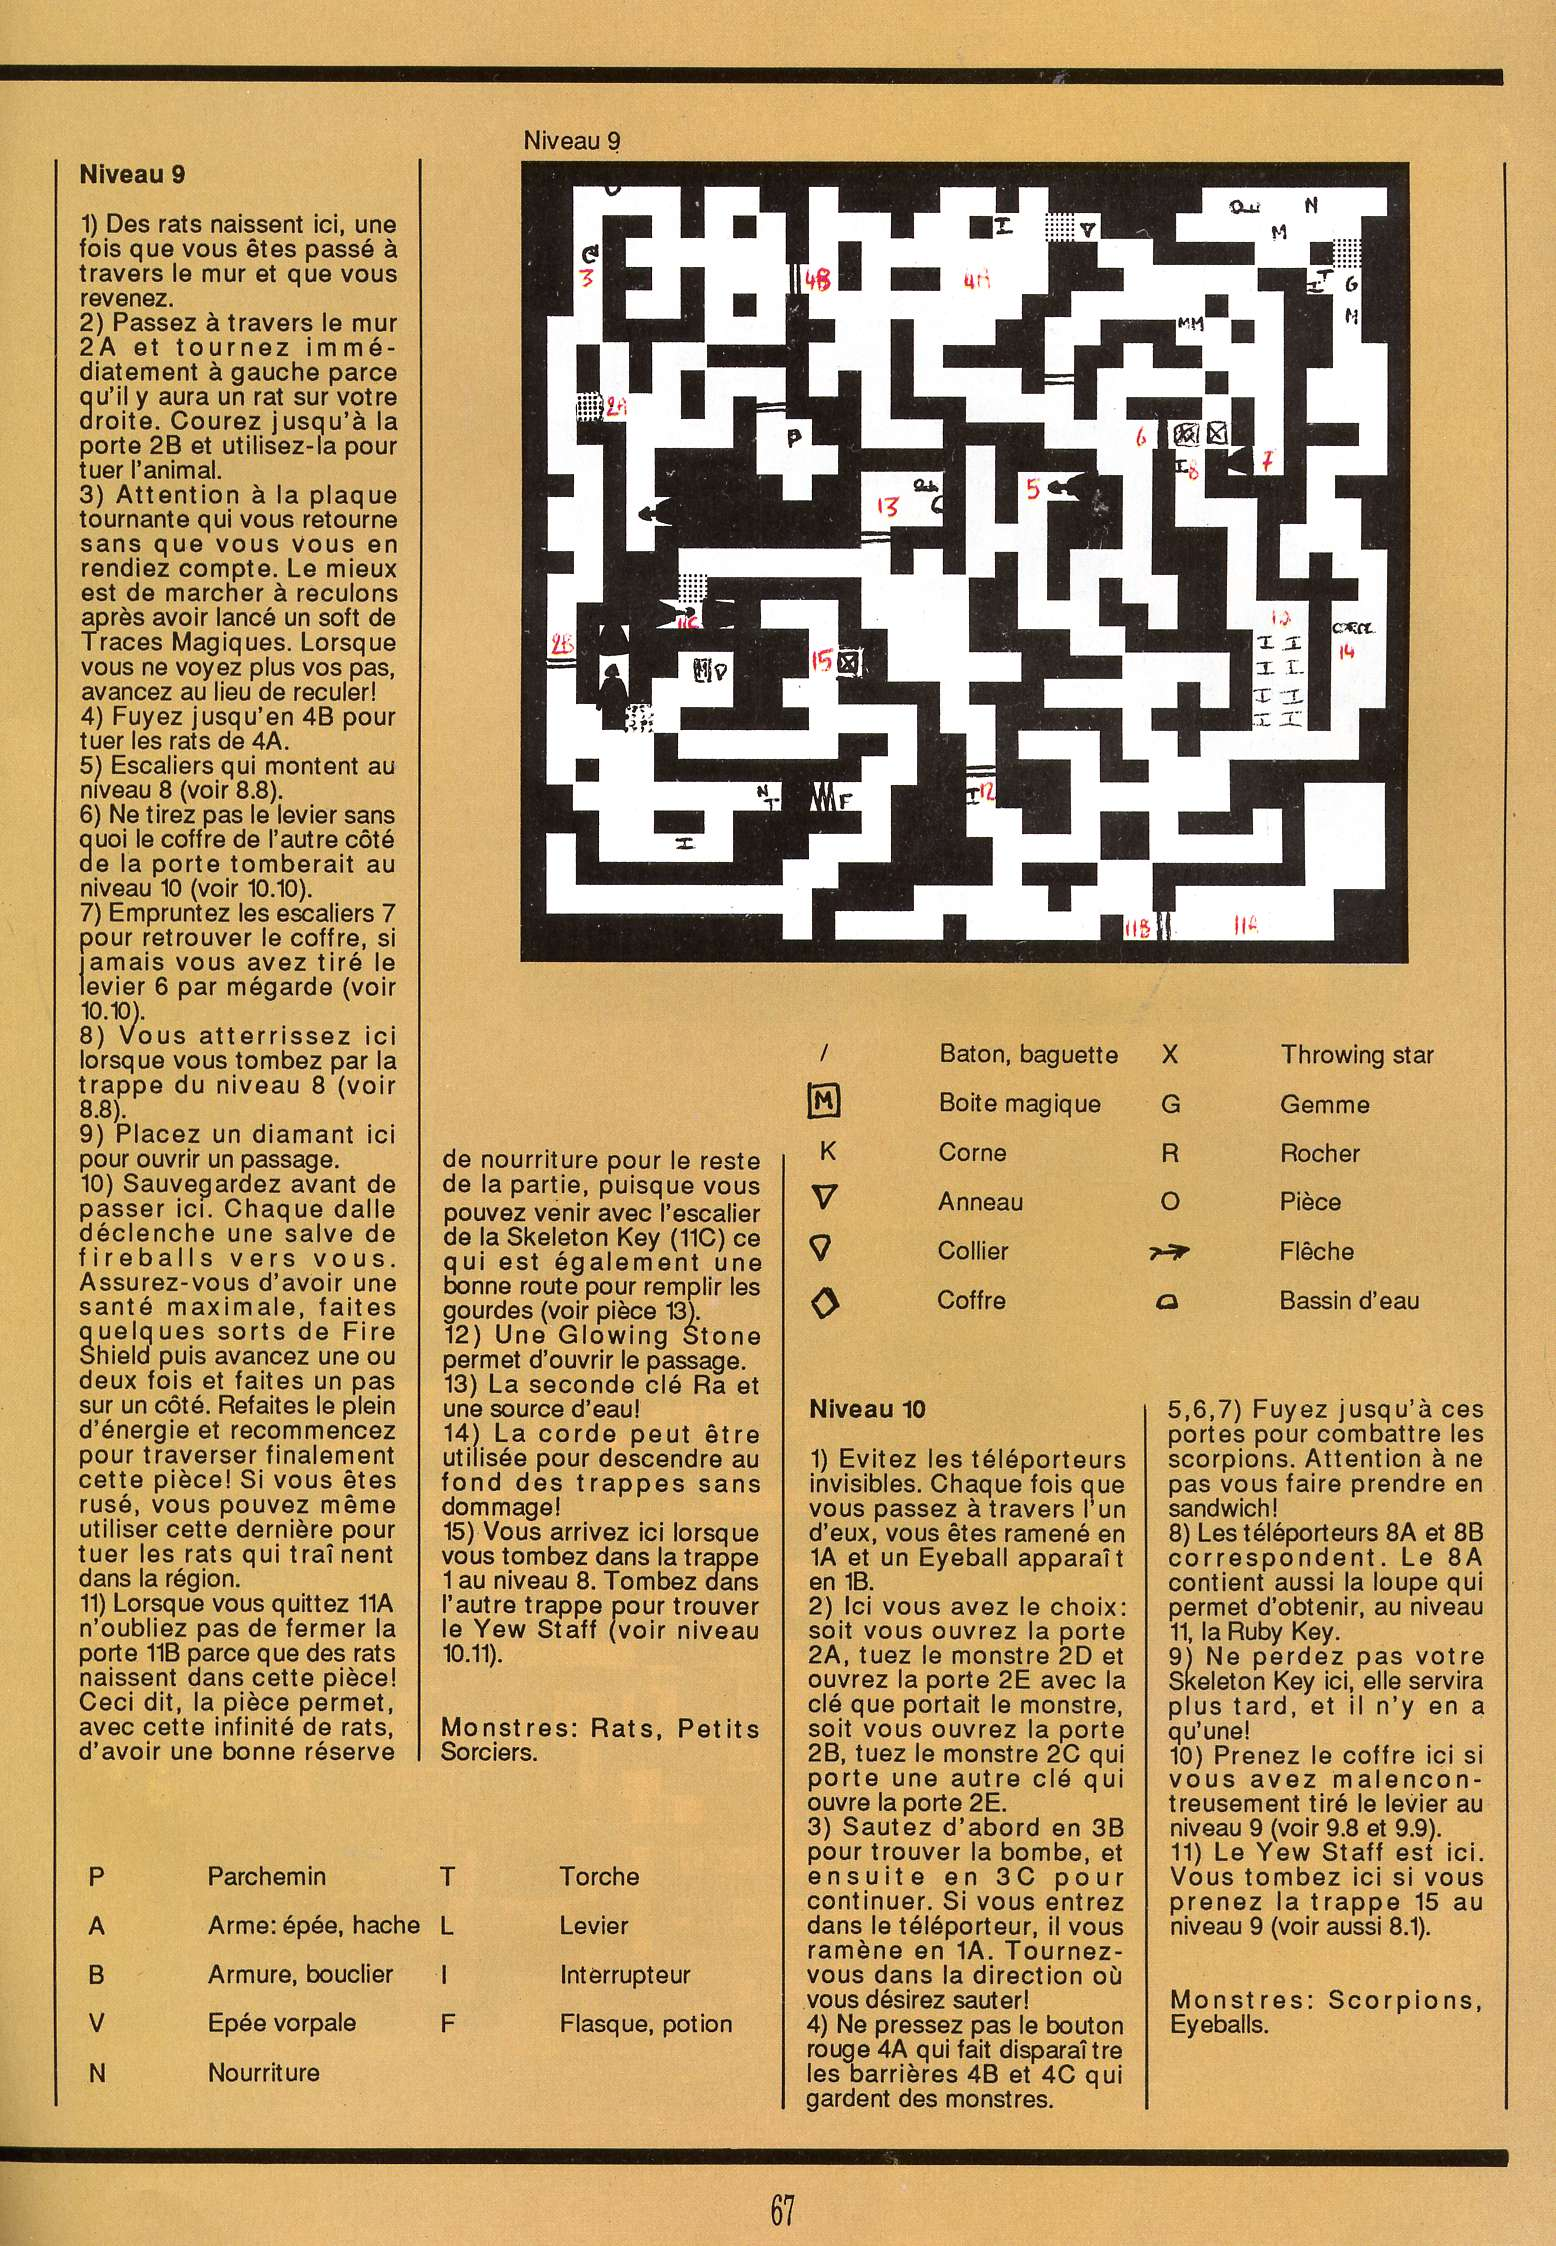 Dungeon Master for Atari ST Guide published in French magazine 'Gen4', Issue #9, March 1989, Page 67